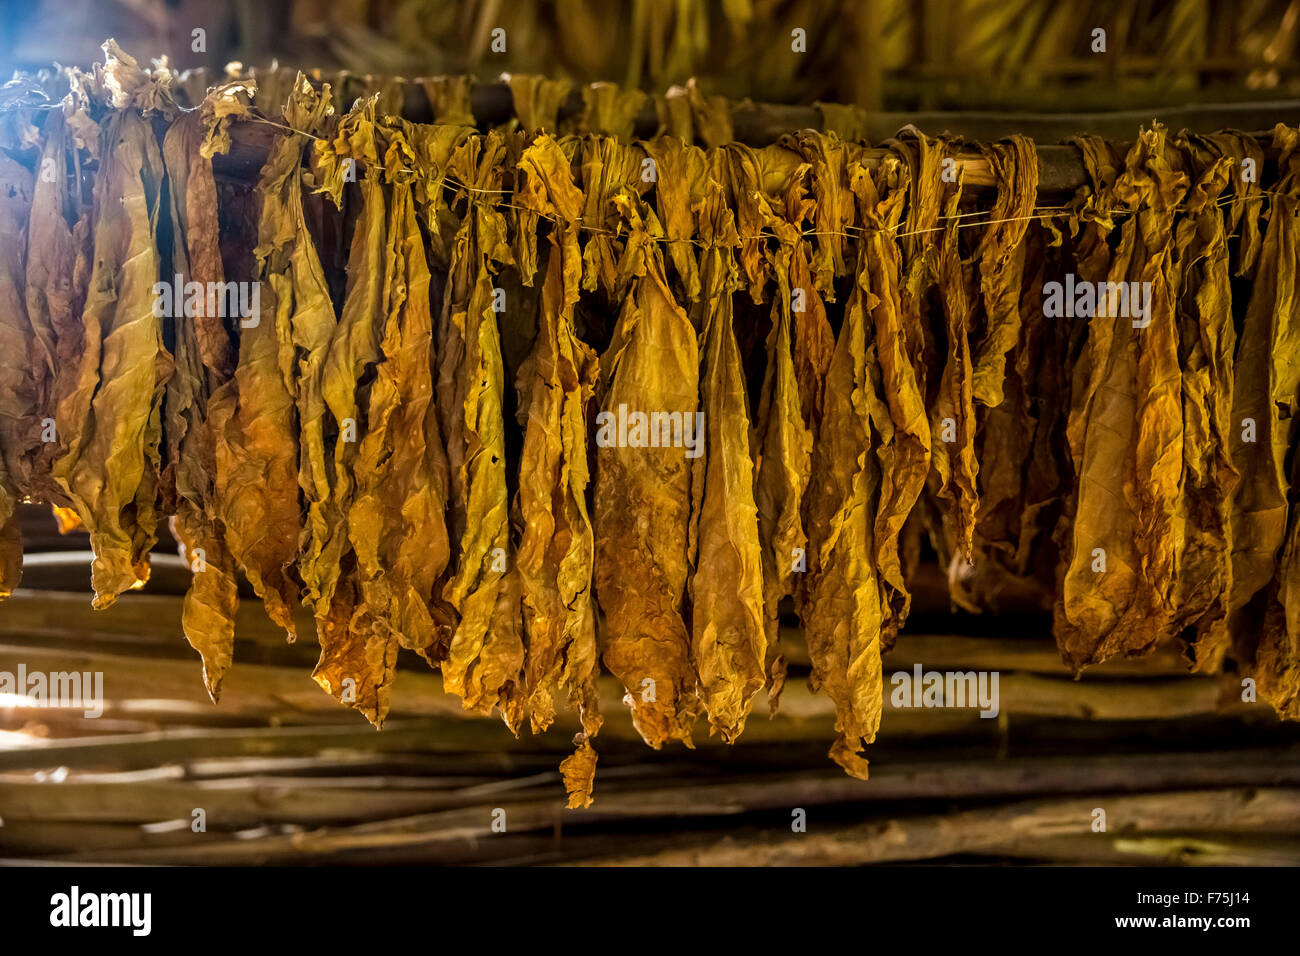 dried tobacco leaves in a tobacco barn, Tobacco Farm in Vinales Valley, Vinales, Cuba, Pinar del Río, Cuba - Stock Image